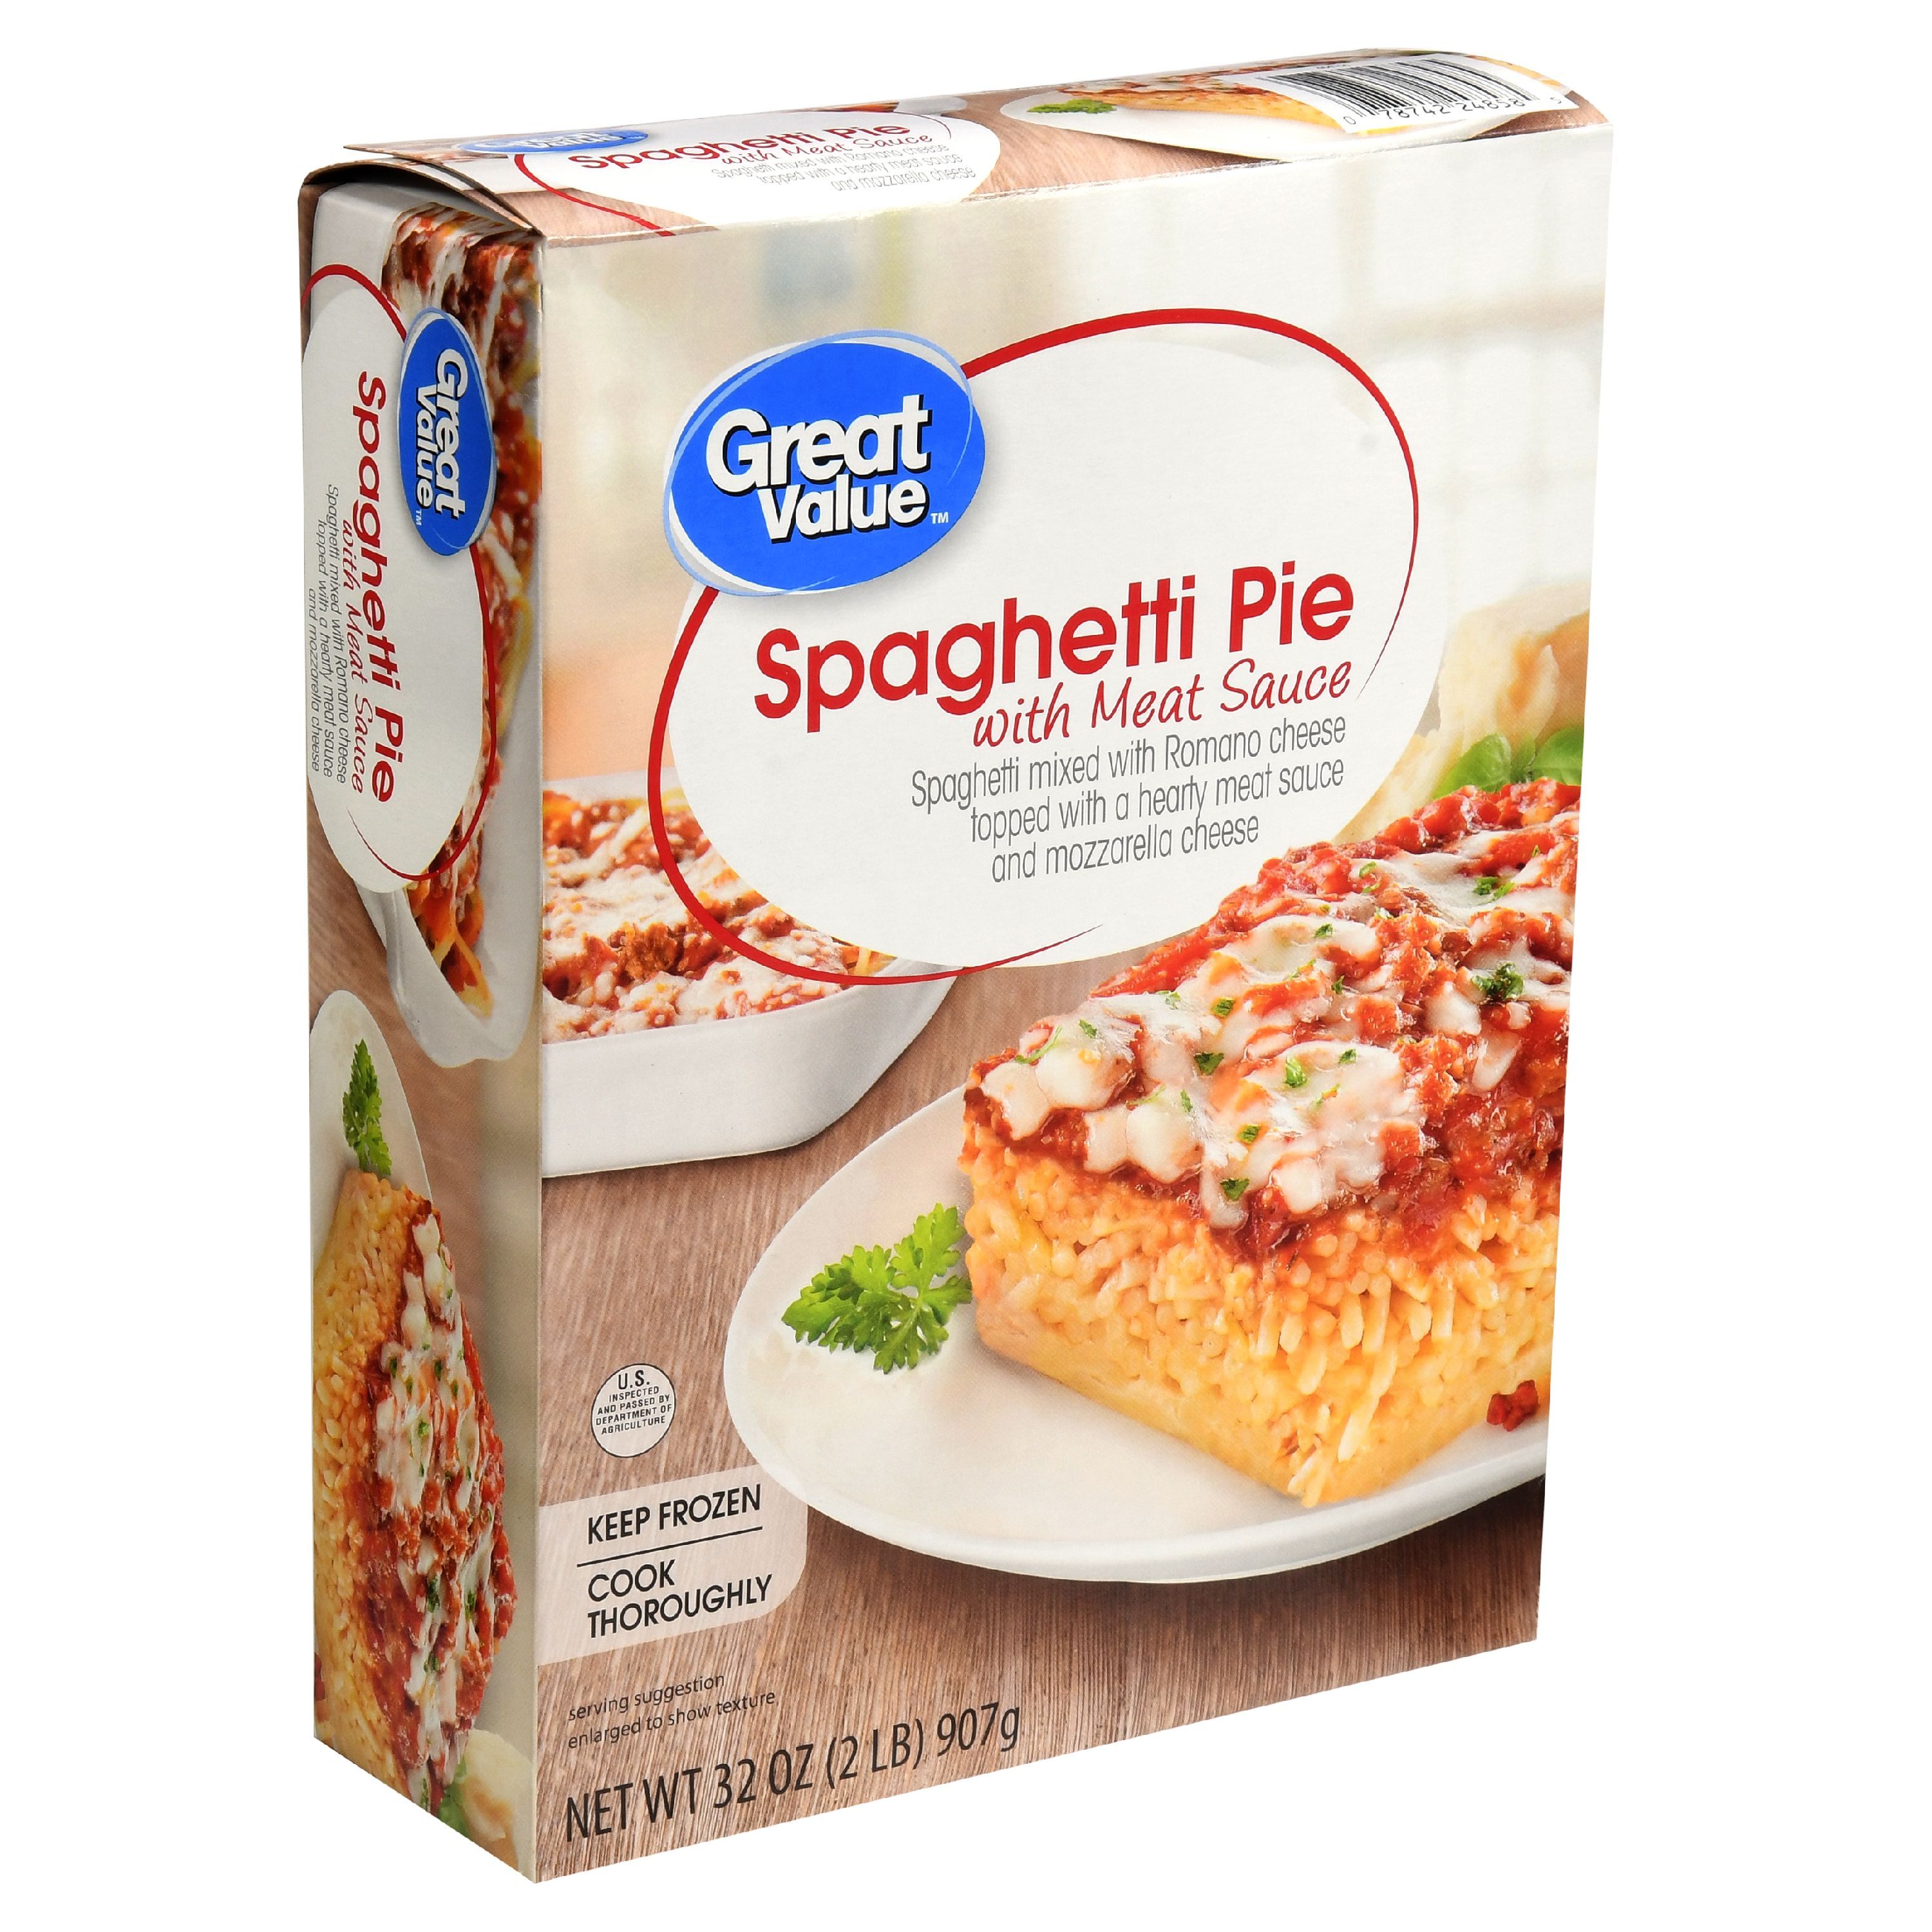 Great Value Frozen Spaghetti Pie with Meat Sauce, 32 oz